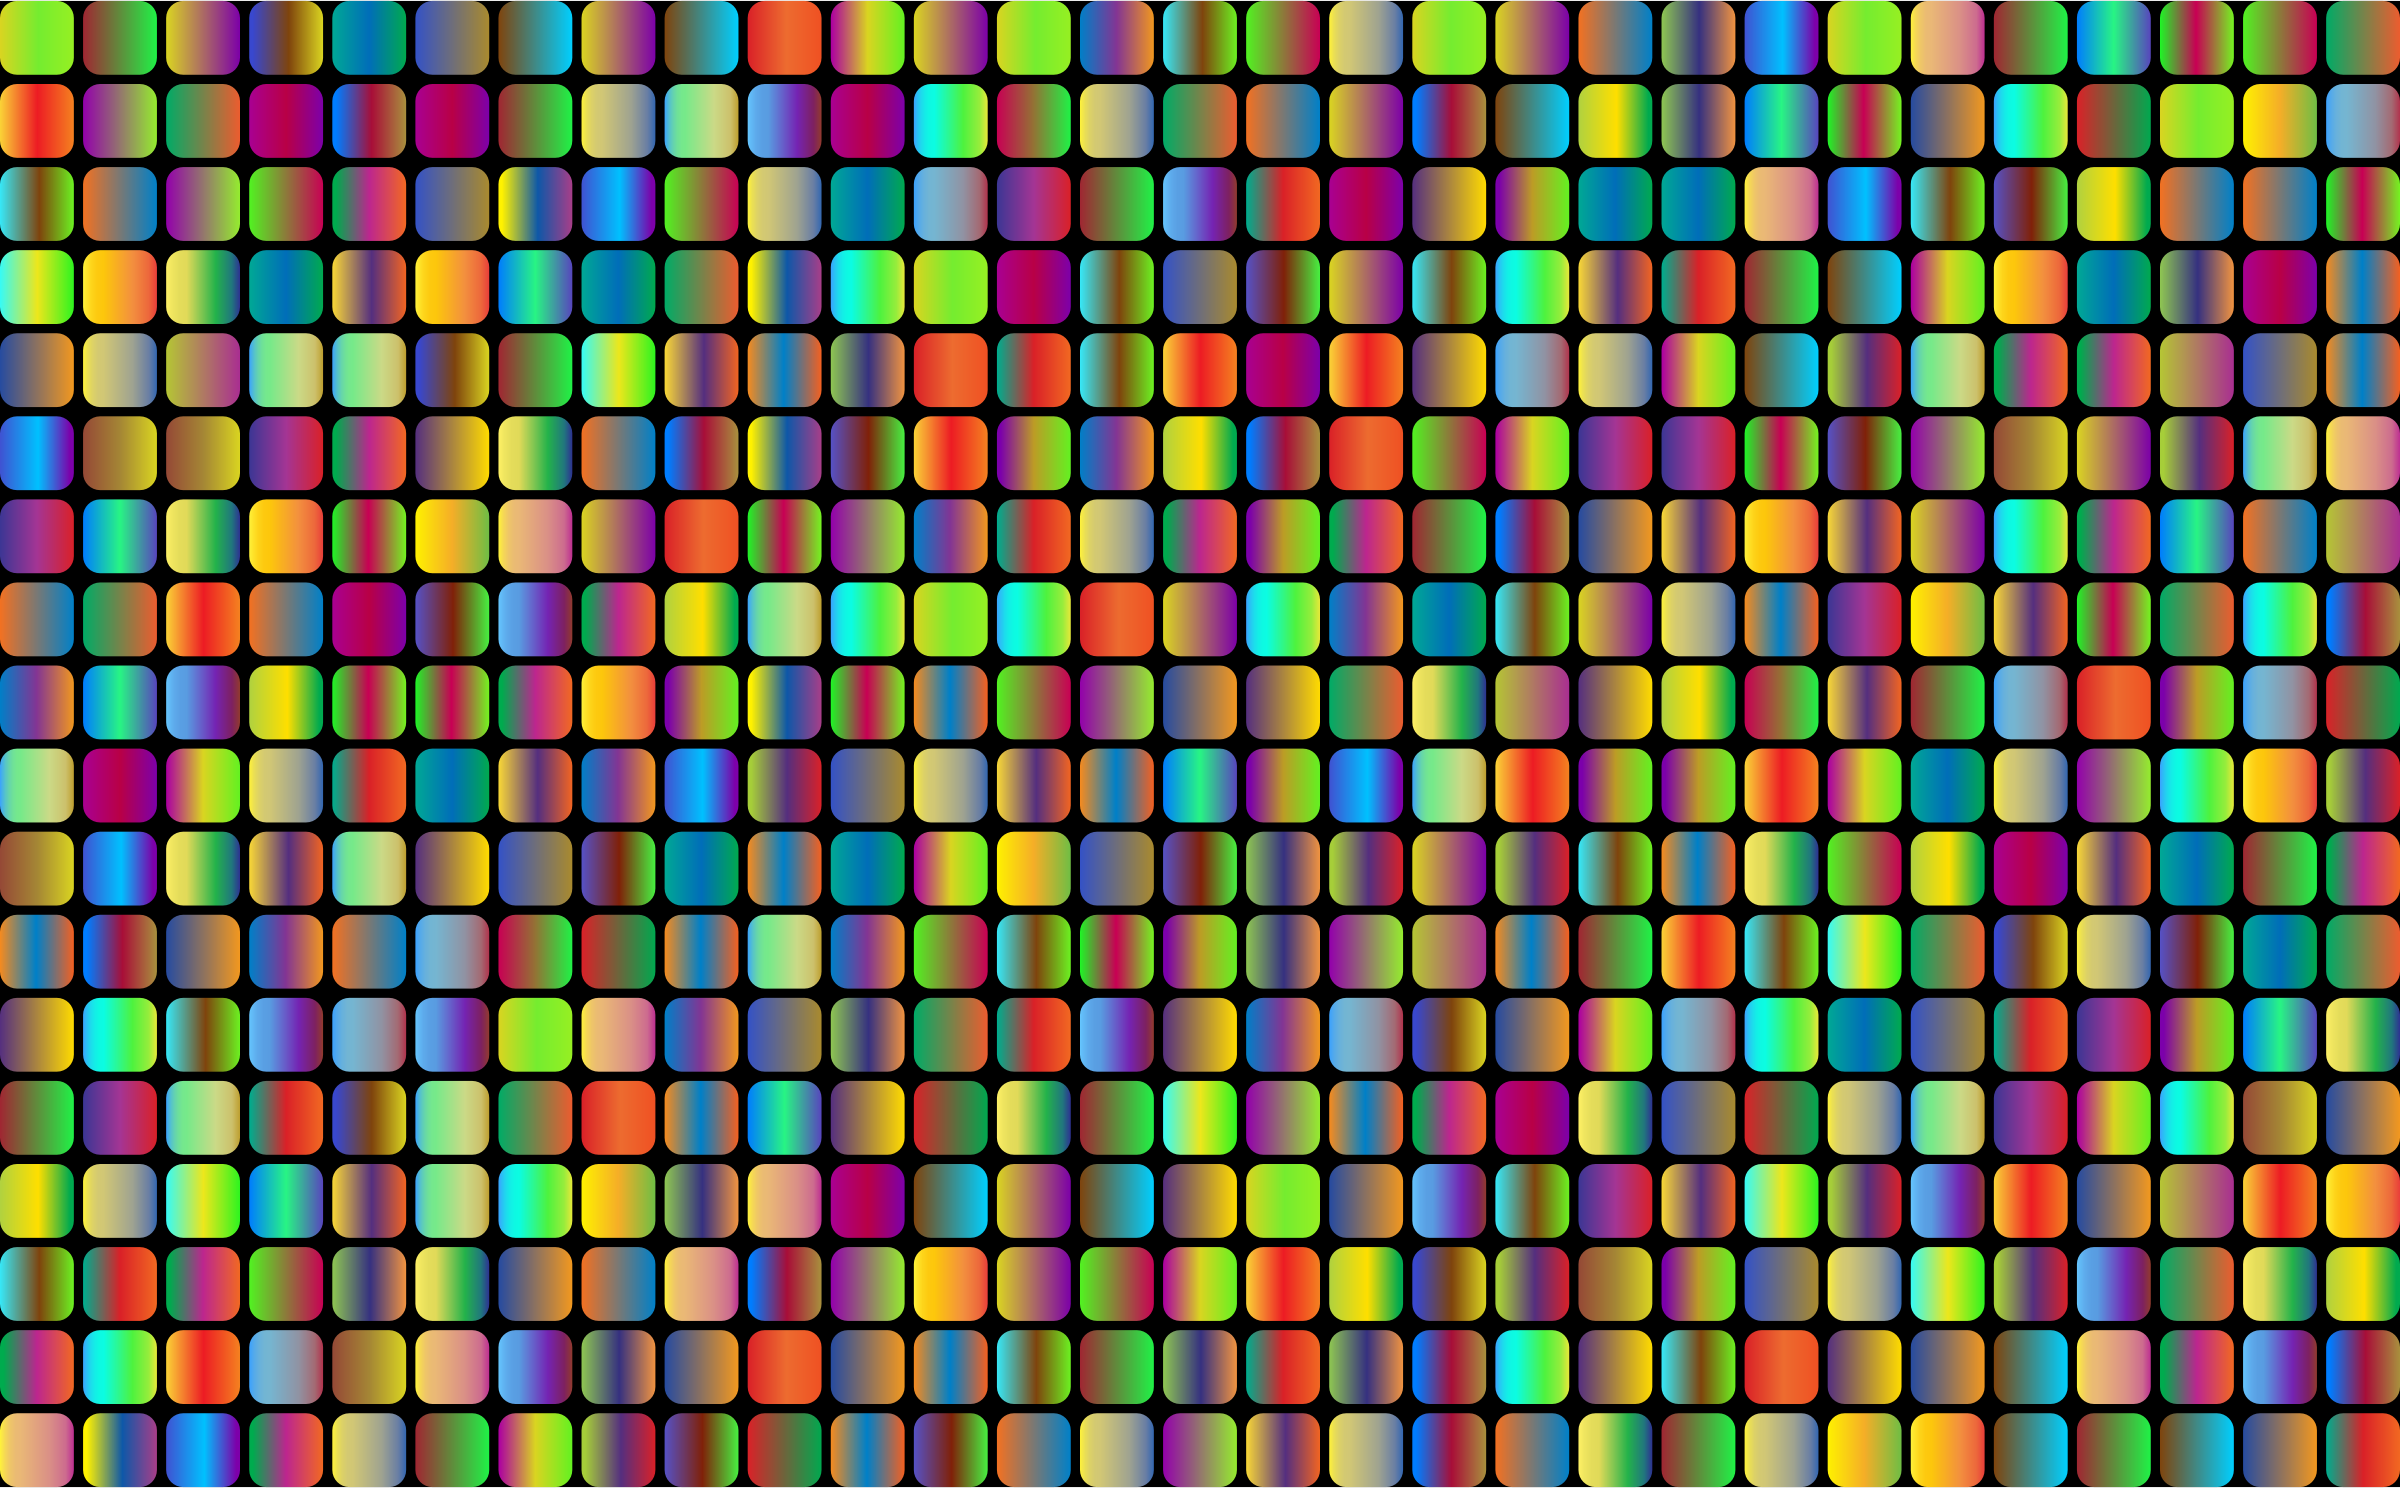 Prismatic Rounded Squares Grid 3 by GDJ